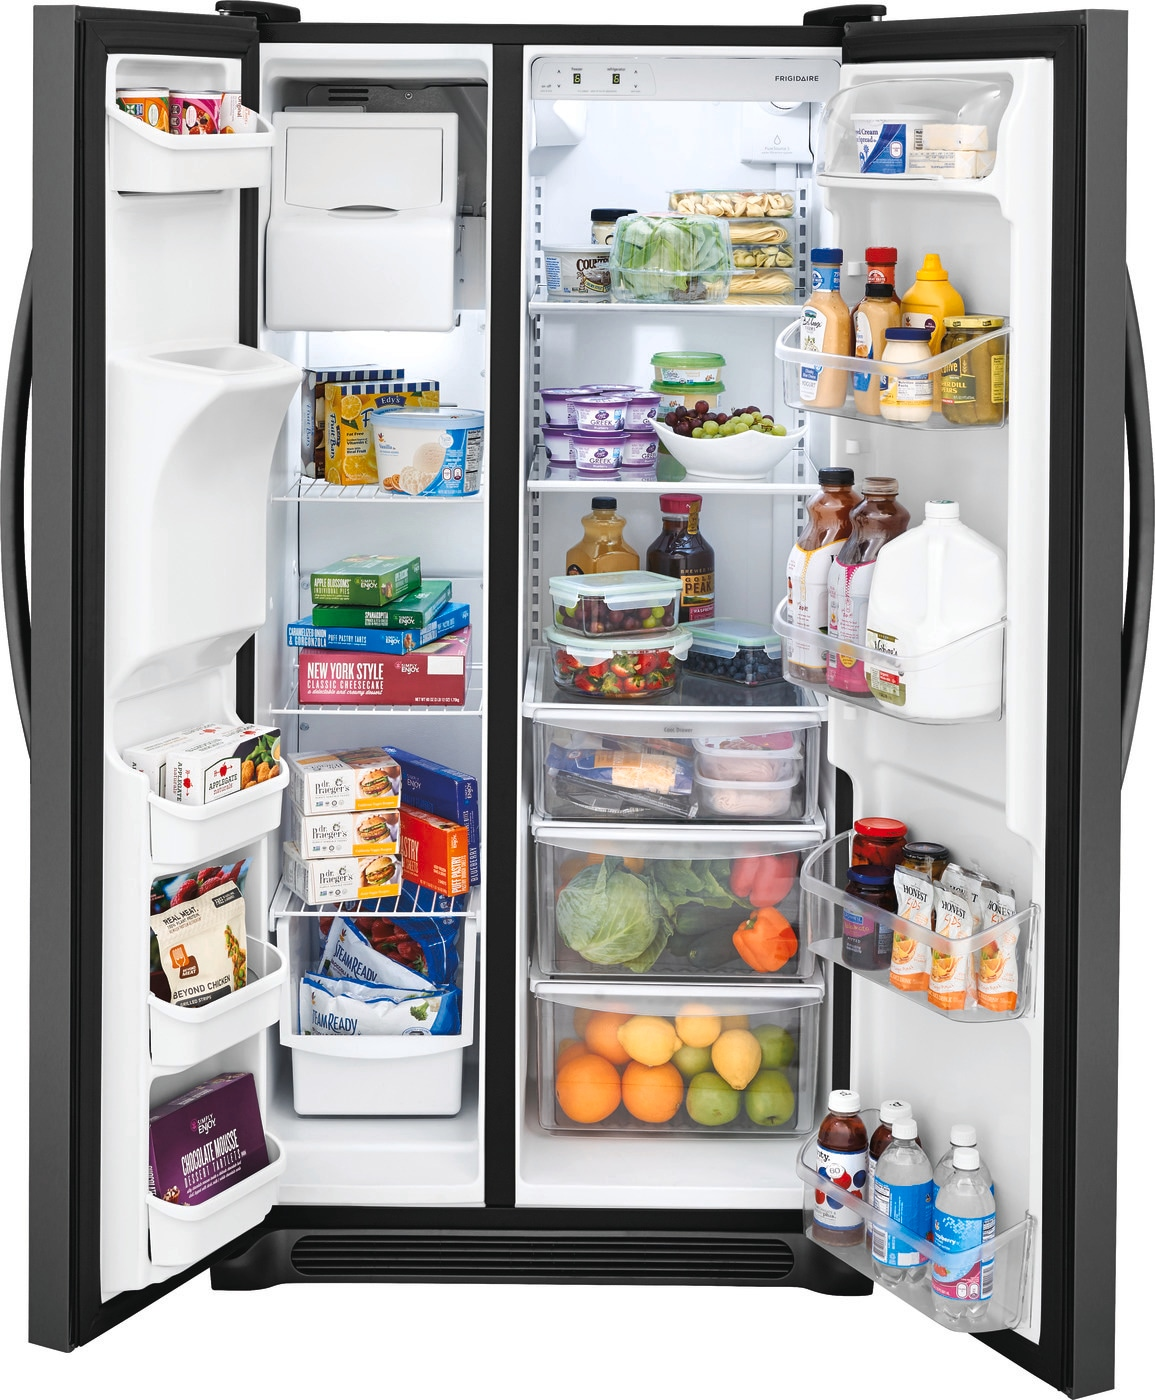 22.1 Cu. Ft. Side-by-Side Refrigerator Black Stainless Steel FFSS2315TD